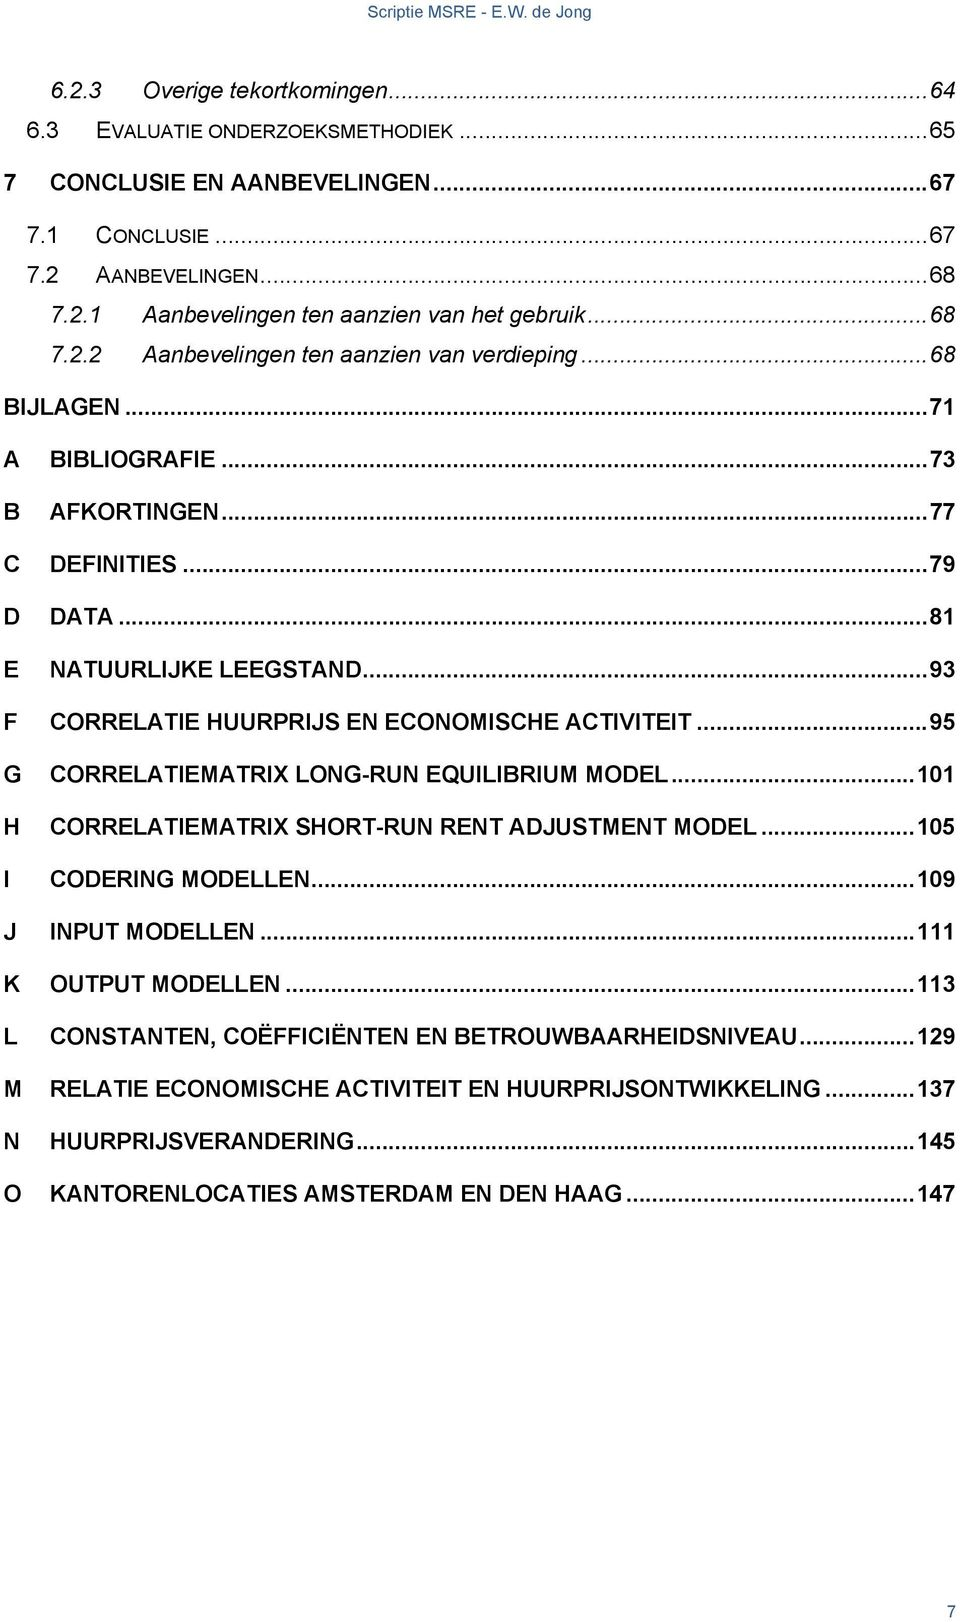 ..93 F CORRELATIE HUURPRIJS EN ECONOMISCHE ACTIVITEIT...95 G CORRELATIEMATRIX LONG-RUN EQUILIBRIUM MODEL...101 H CORRELATIEMATRIX SHORT-RUN RENT ADJUSTMENT MODEL...105 I CODERING MODELLEN.